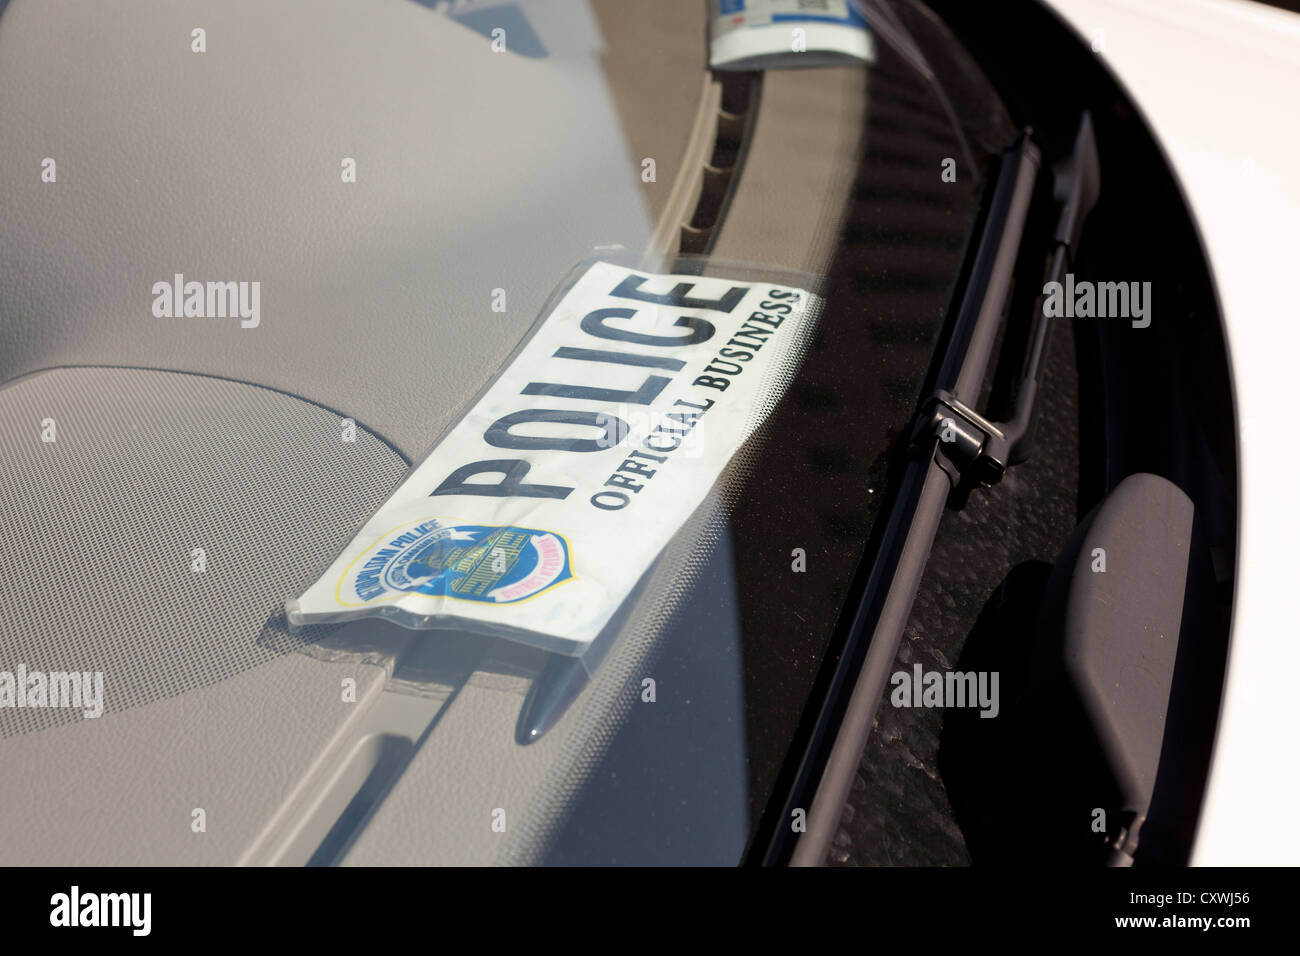 Police Official Business tag in car - Washington, DC USA - Stock Image